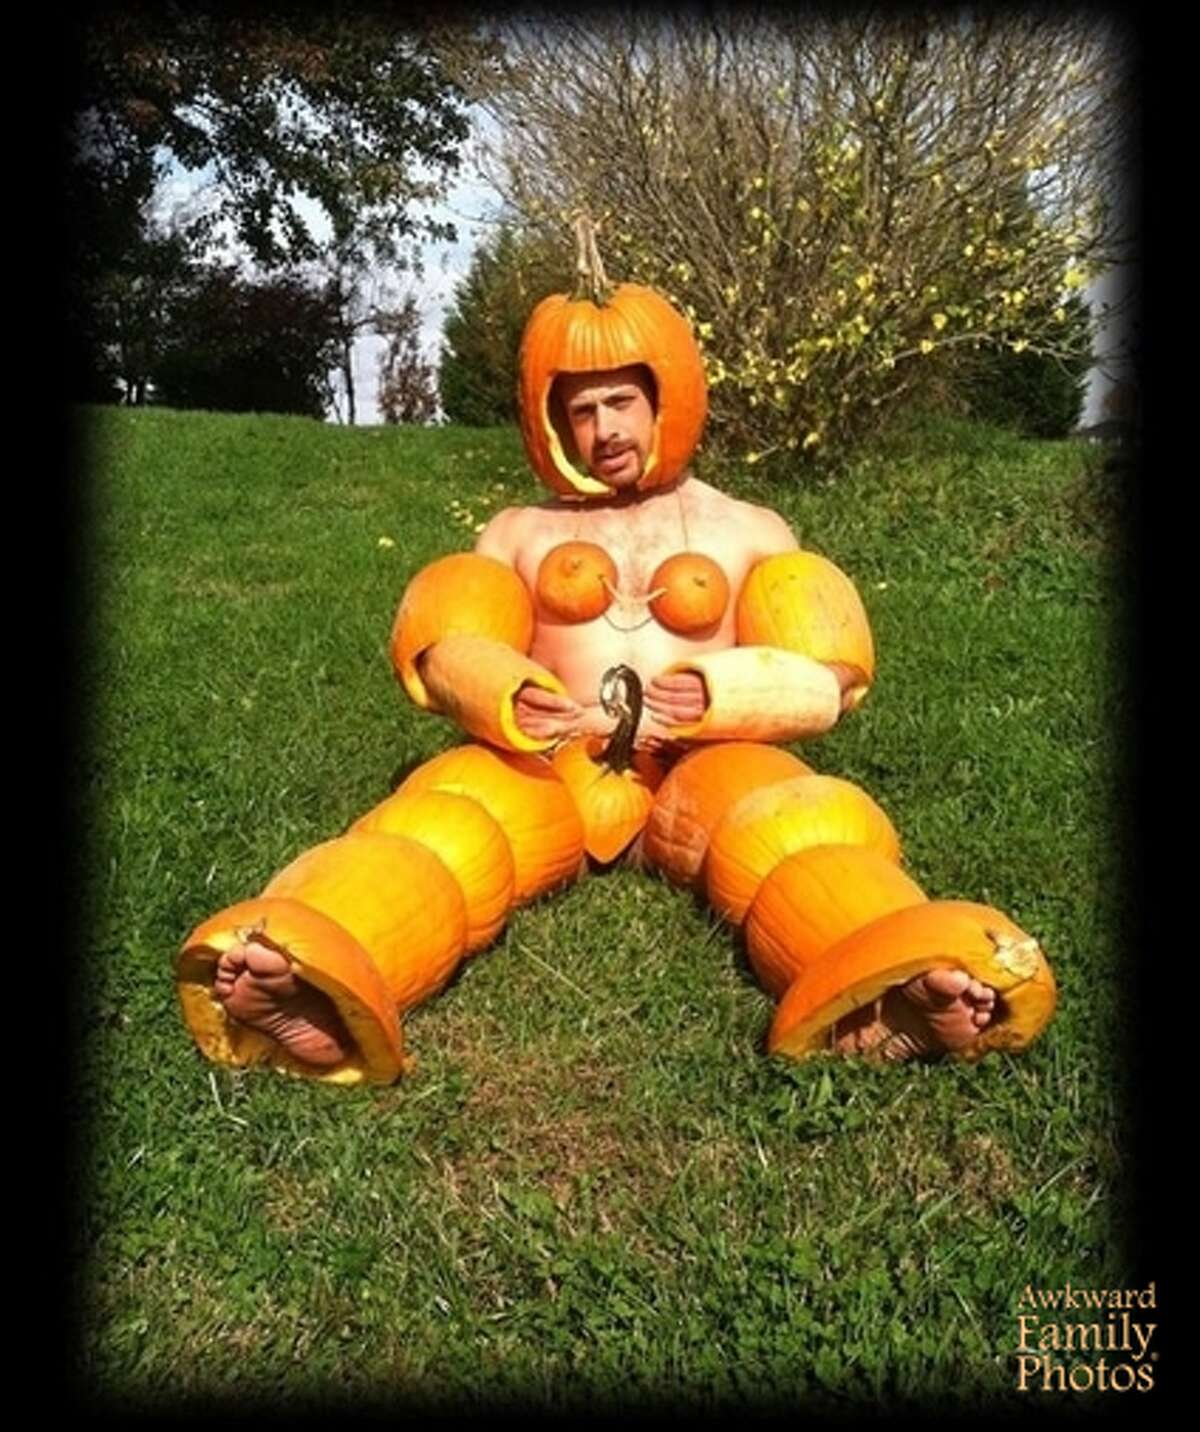 PUMPKIN SPICE: Clever costume but not easy to walk around in.